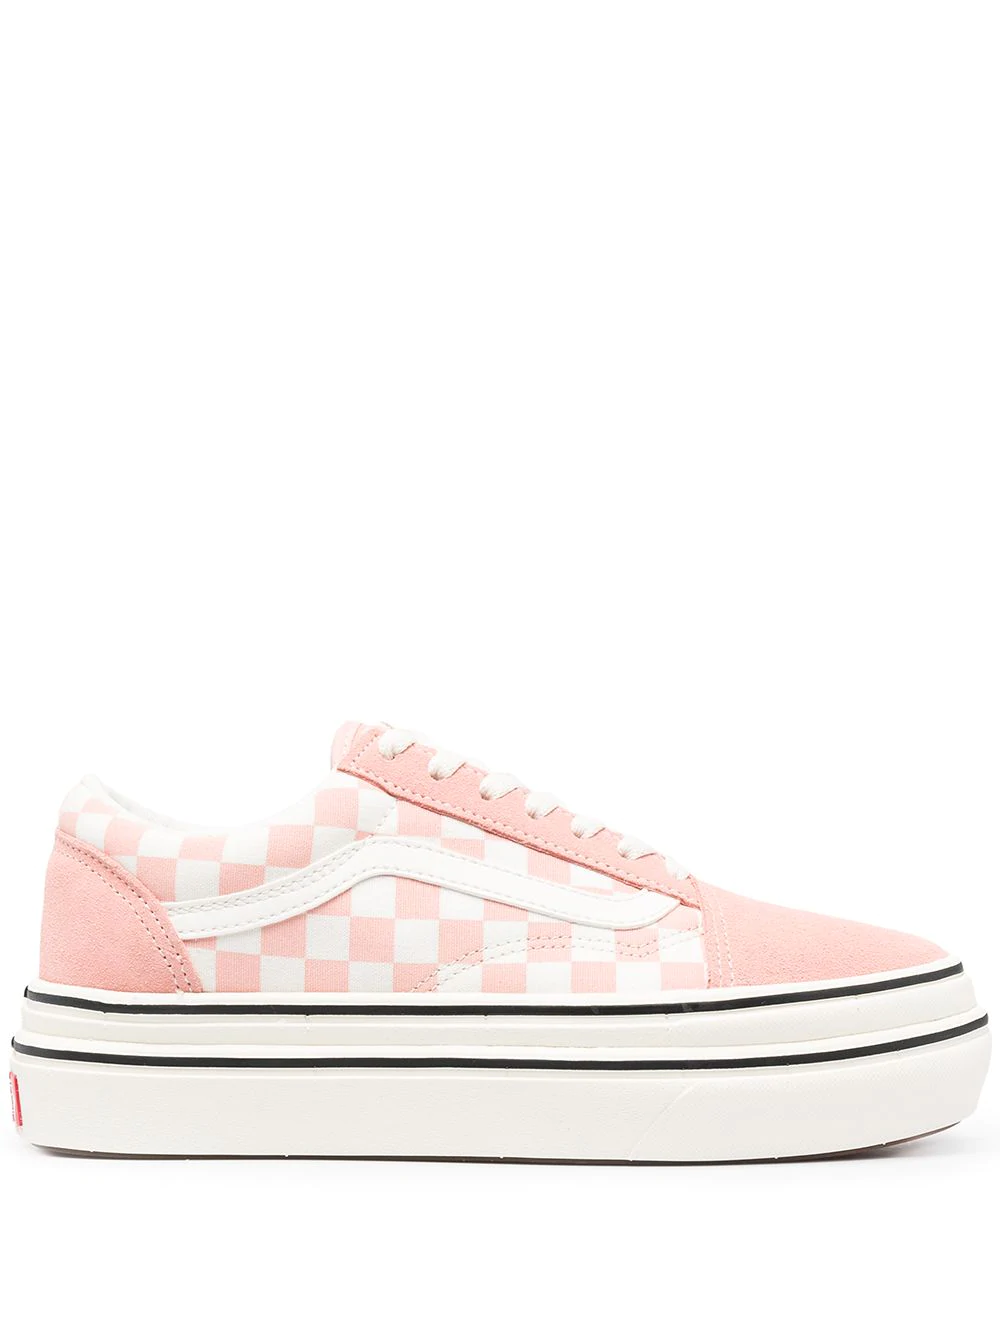 Vans Pink Checkerboard Signature Chunky Trainers 240лв